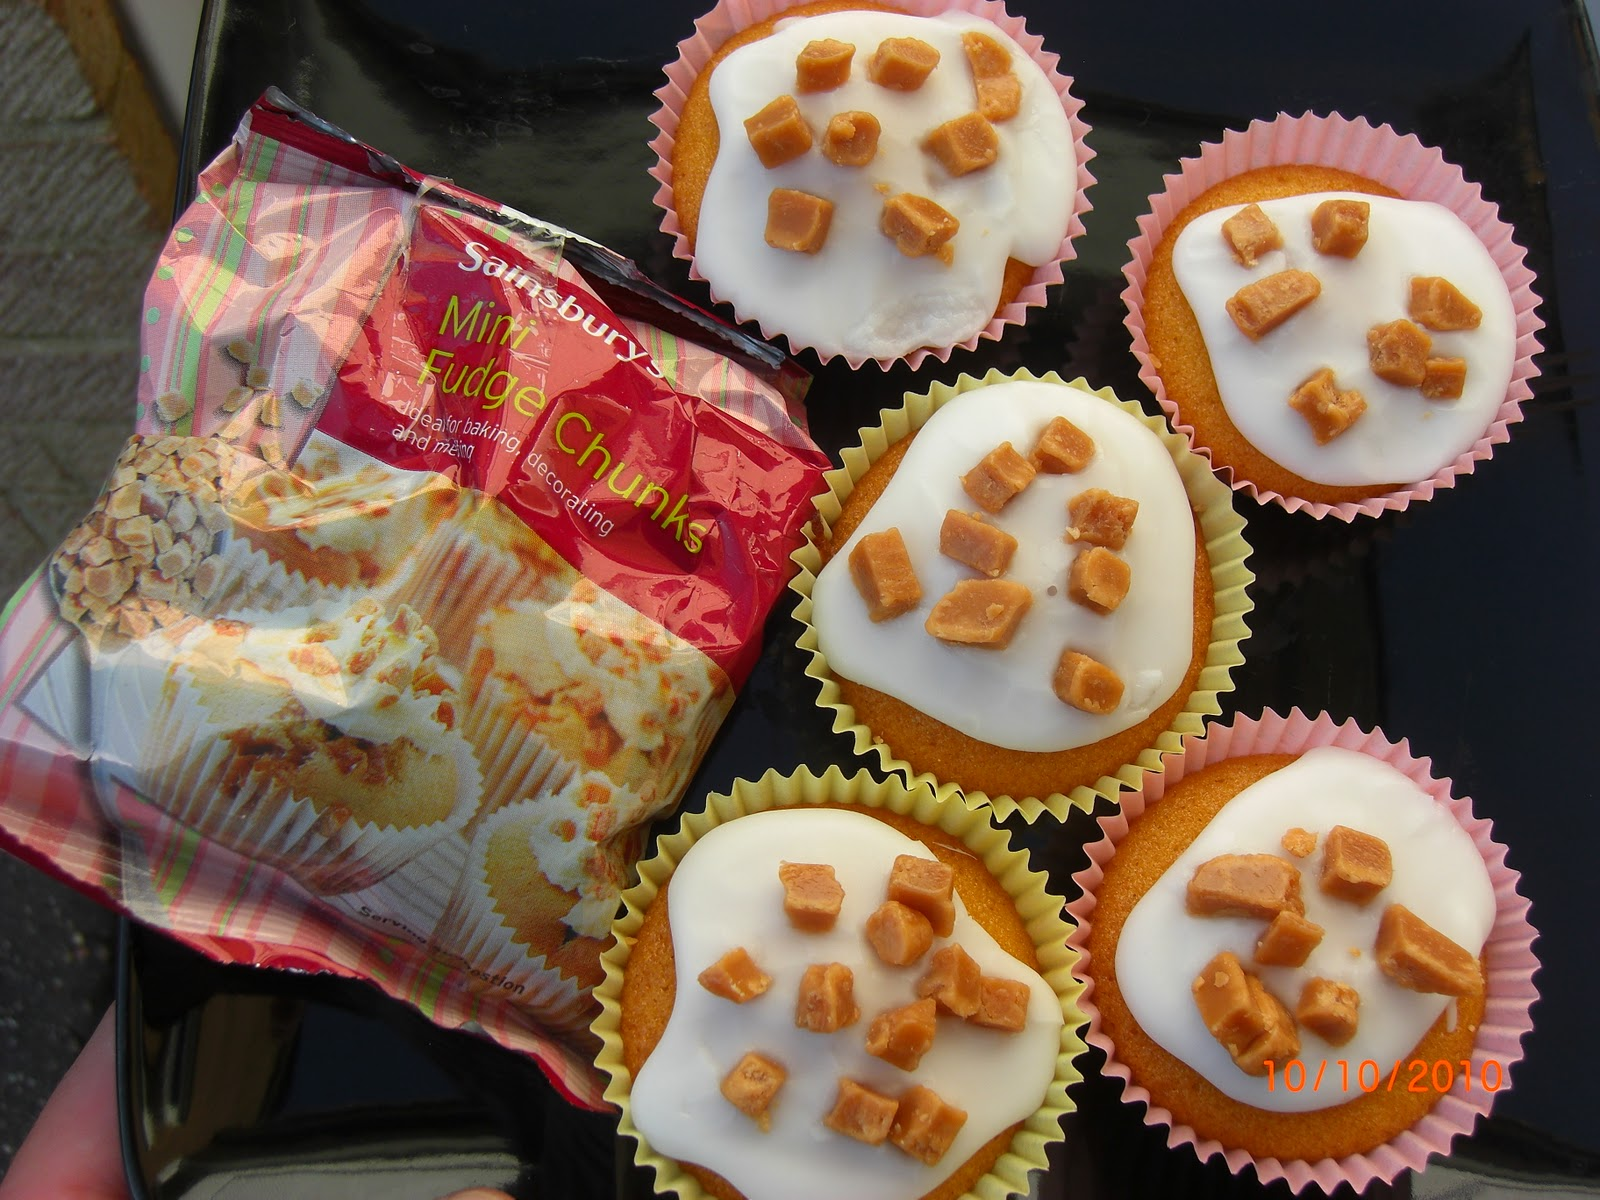 Given To Distracting Others: SAINSBURY S HOME BAKING RANGE ...